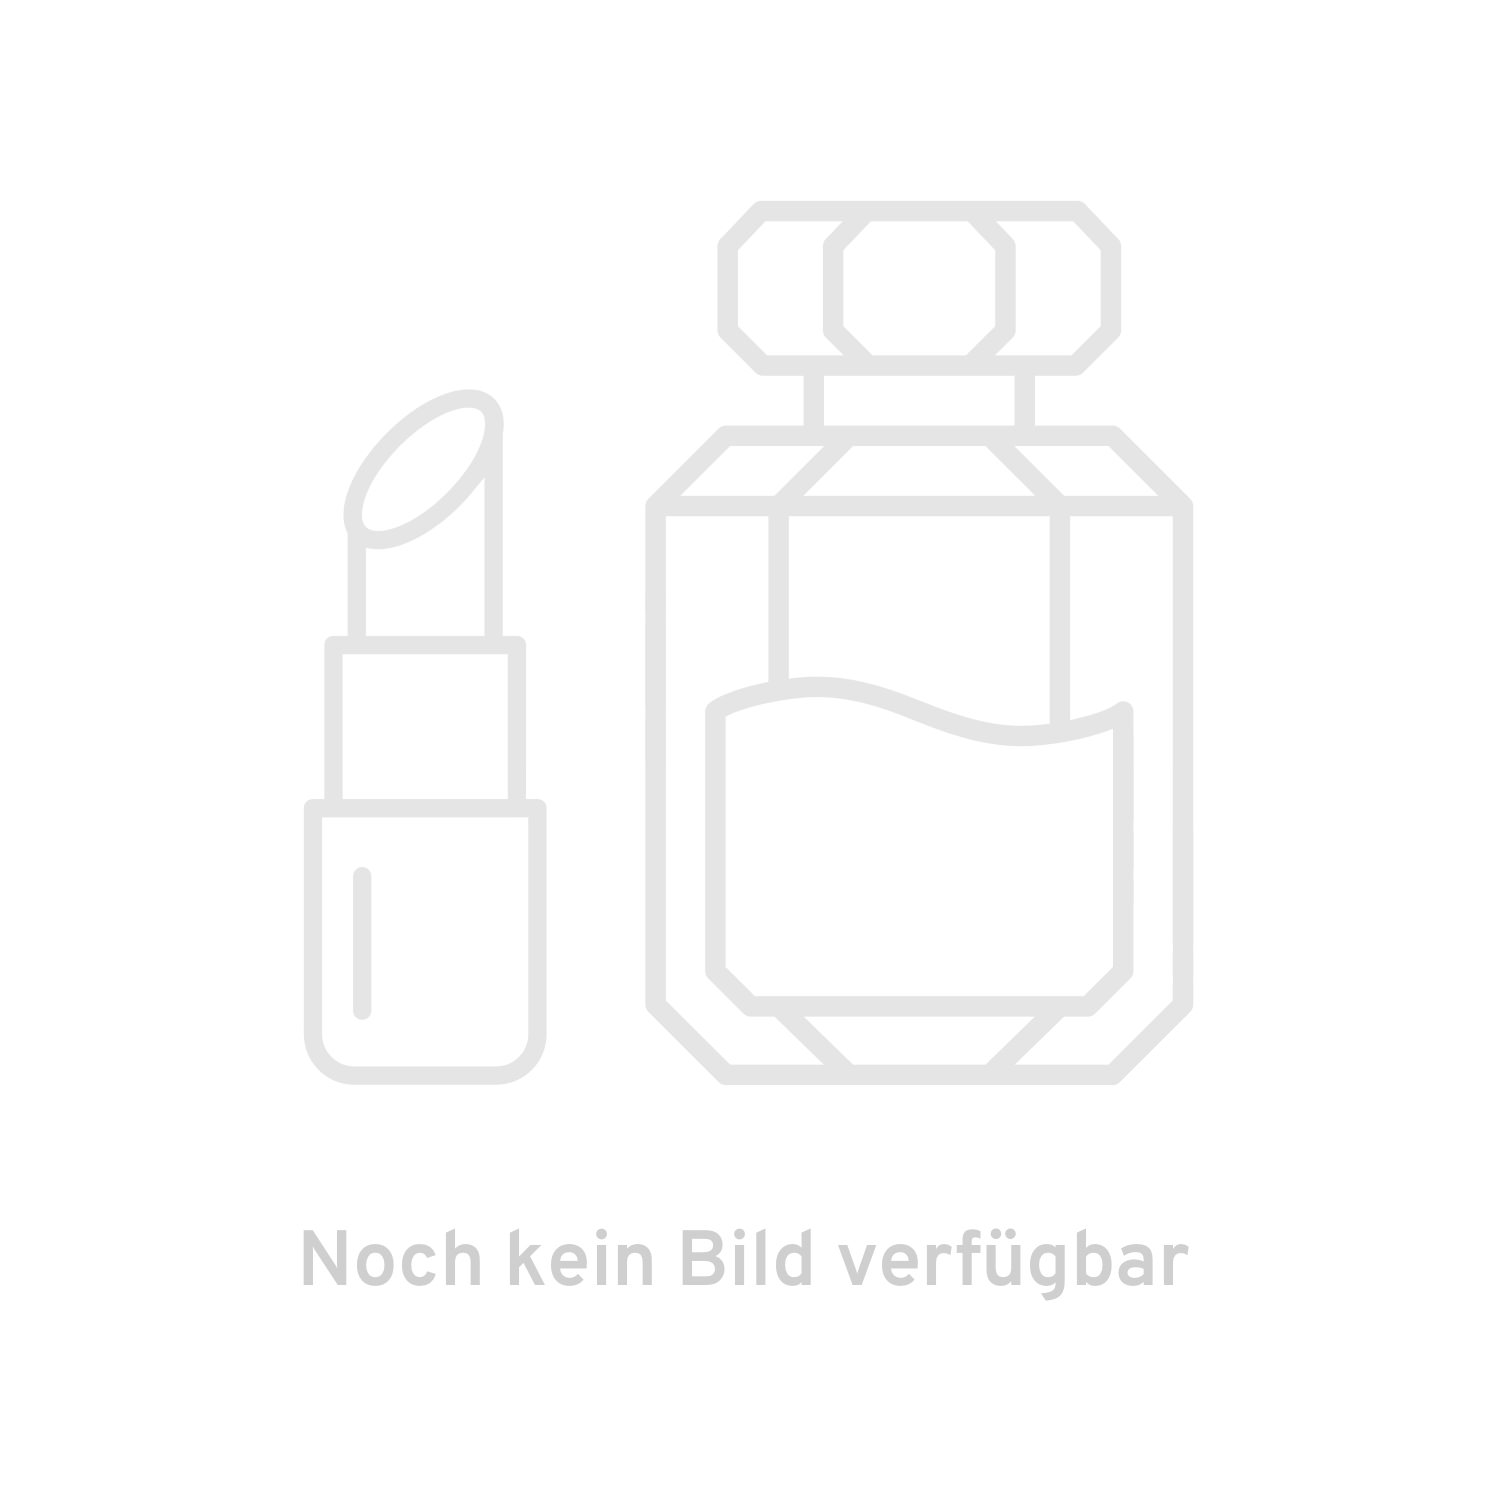 gingerlily hand wash von molton brown bestellen bei ludwig beck beauty online. Black Bedroom Furniture Sets. Home Design Ideas